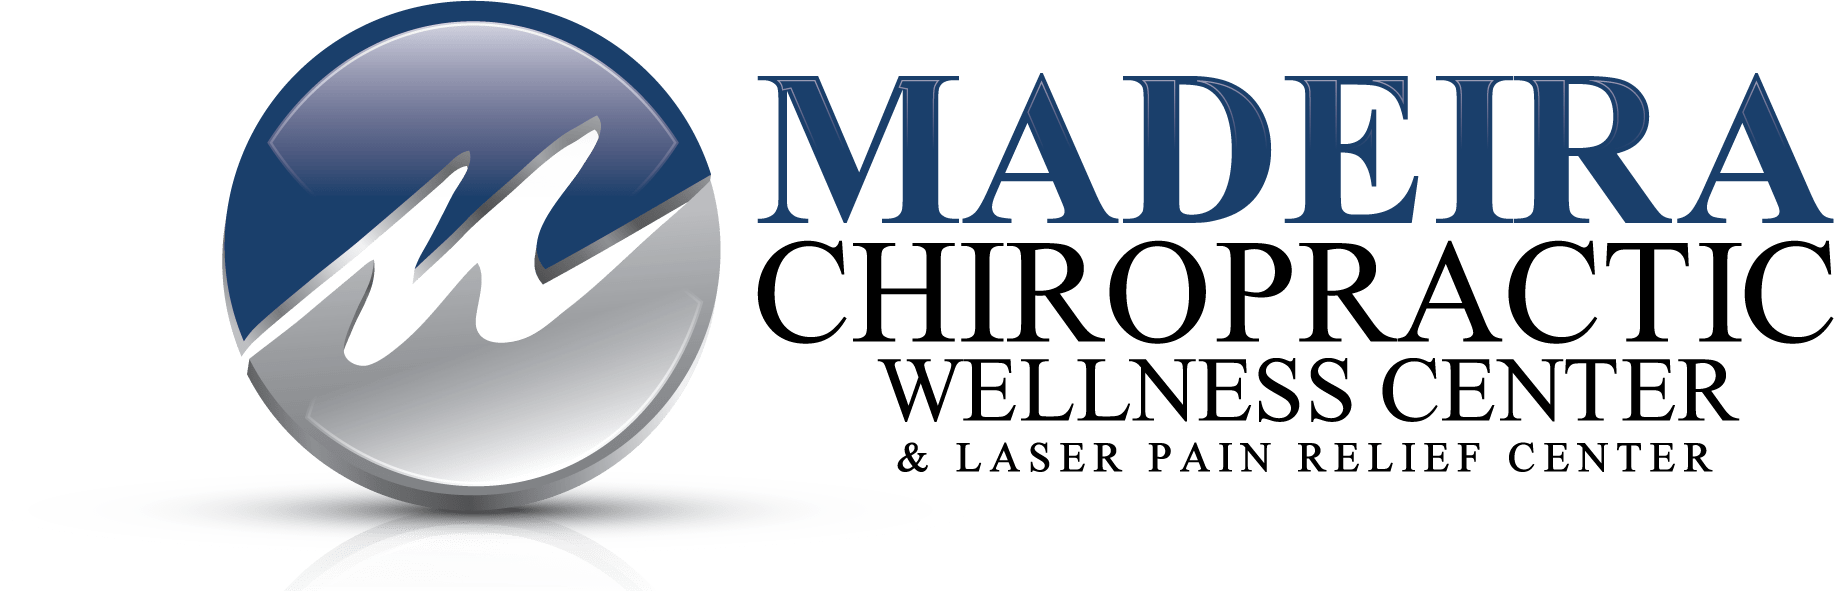 Madeira Chiropractic Wellness Center and Laser Pain Relief Center